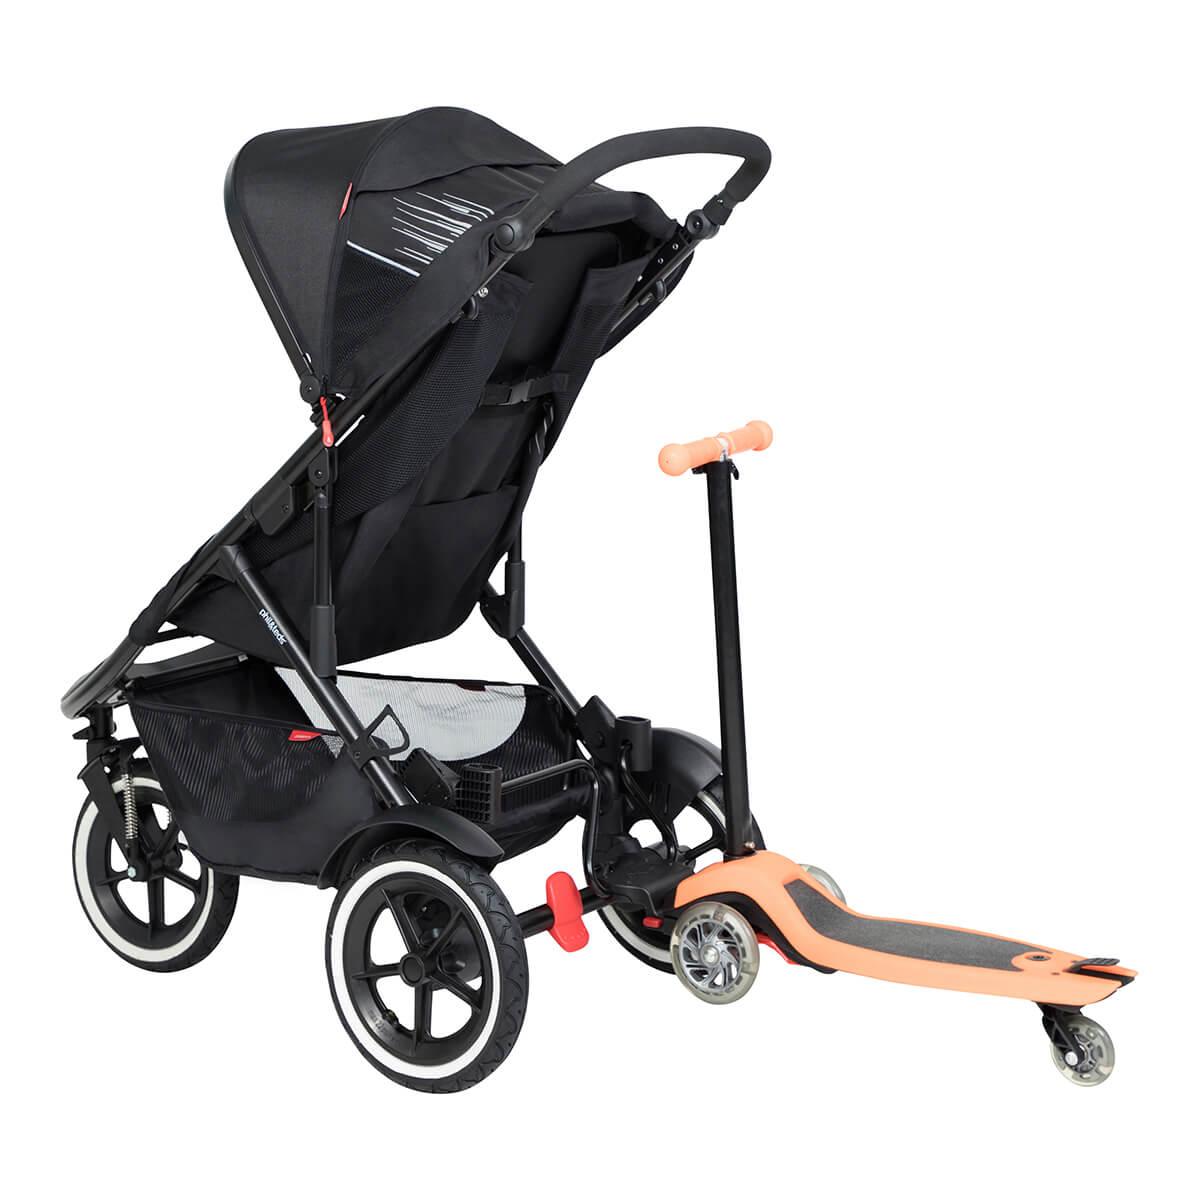 https://cdn.accentuate.io/4513462550624/19440099852472/philteds-sport-buggy-with-freerider-stroller-board-in-rear-v1626486530809.jpg?1200x1200